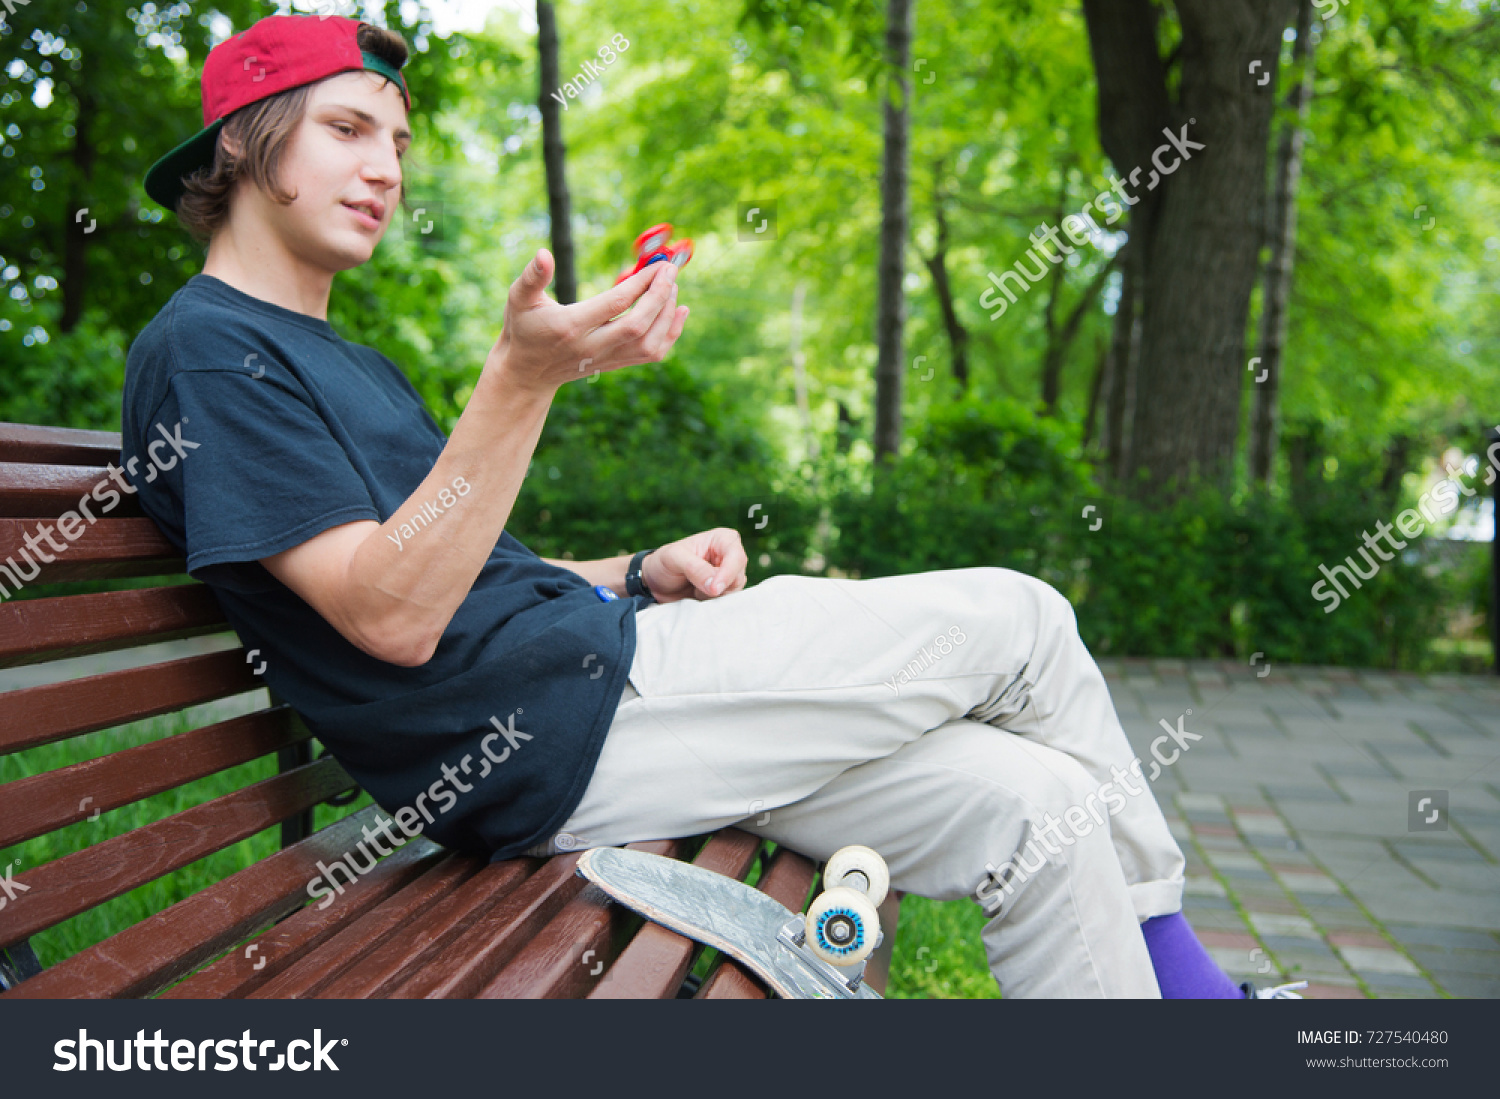 406c04dd9a1 Long-haired hipster skater in a cap sits on a bench and spins on a